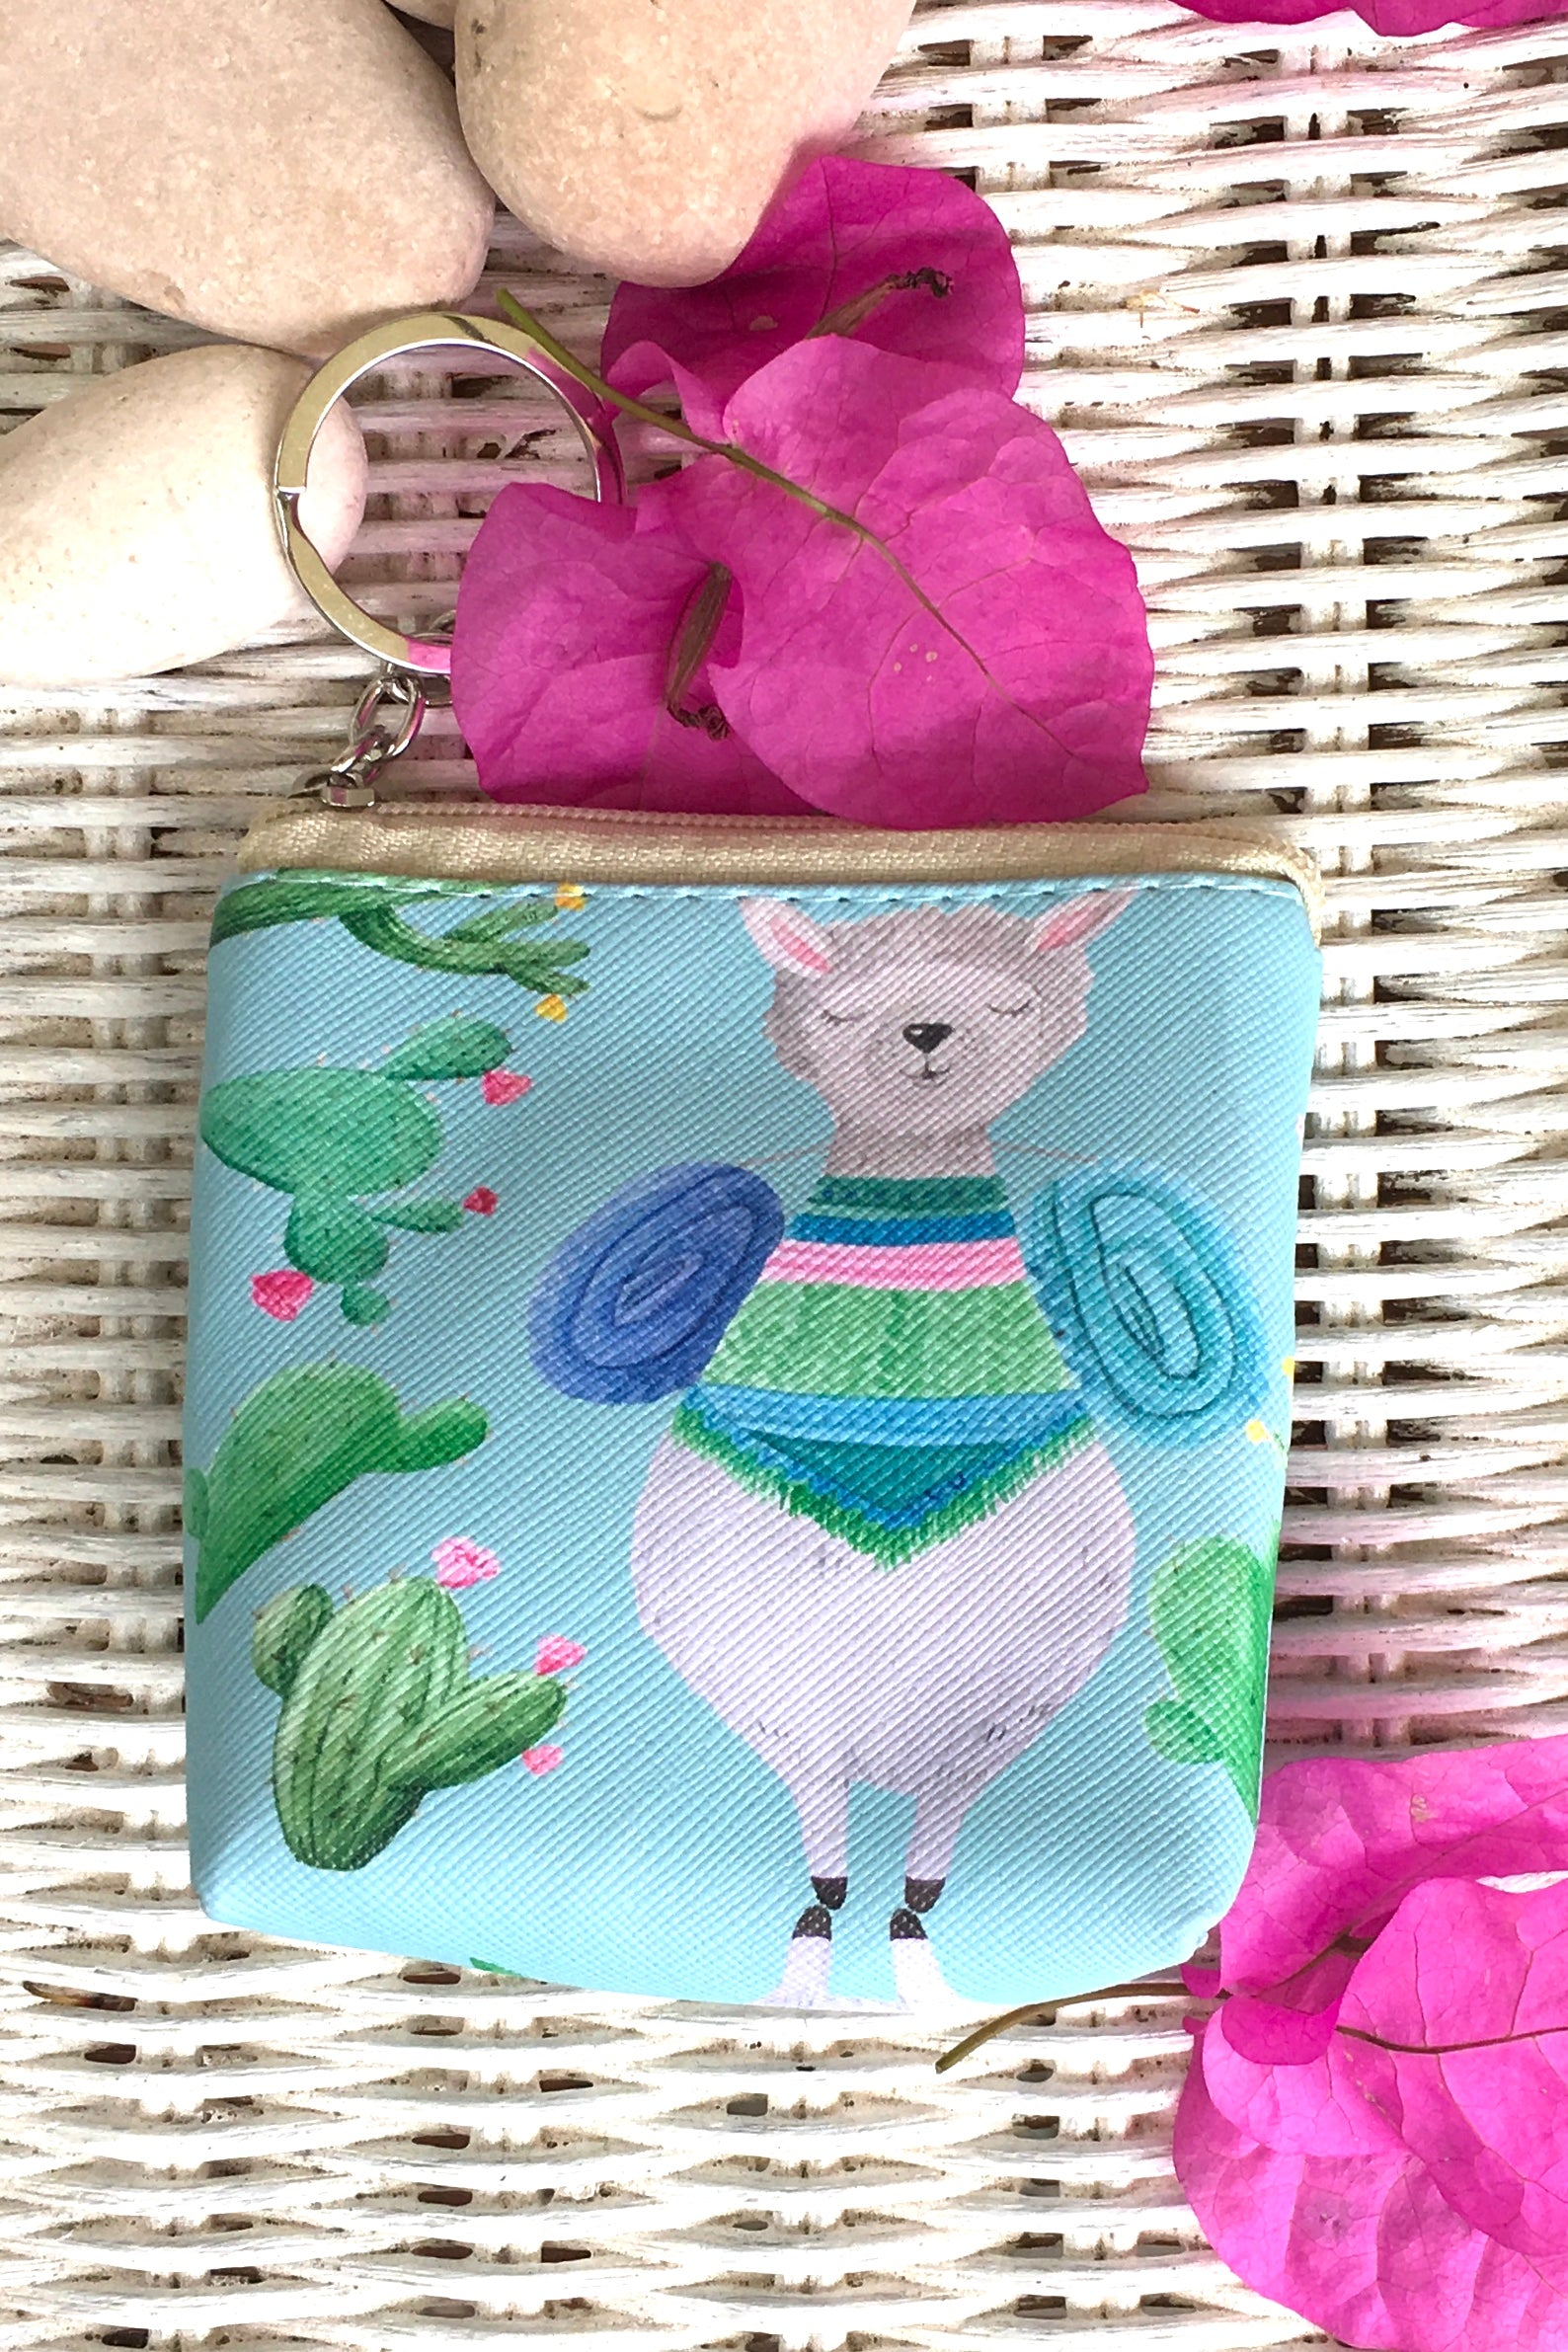 Yeah Mini Coin Purse Llama Mystic in Four Colours, cute alpaca purse